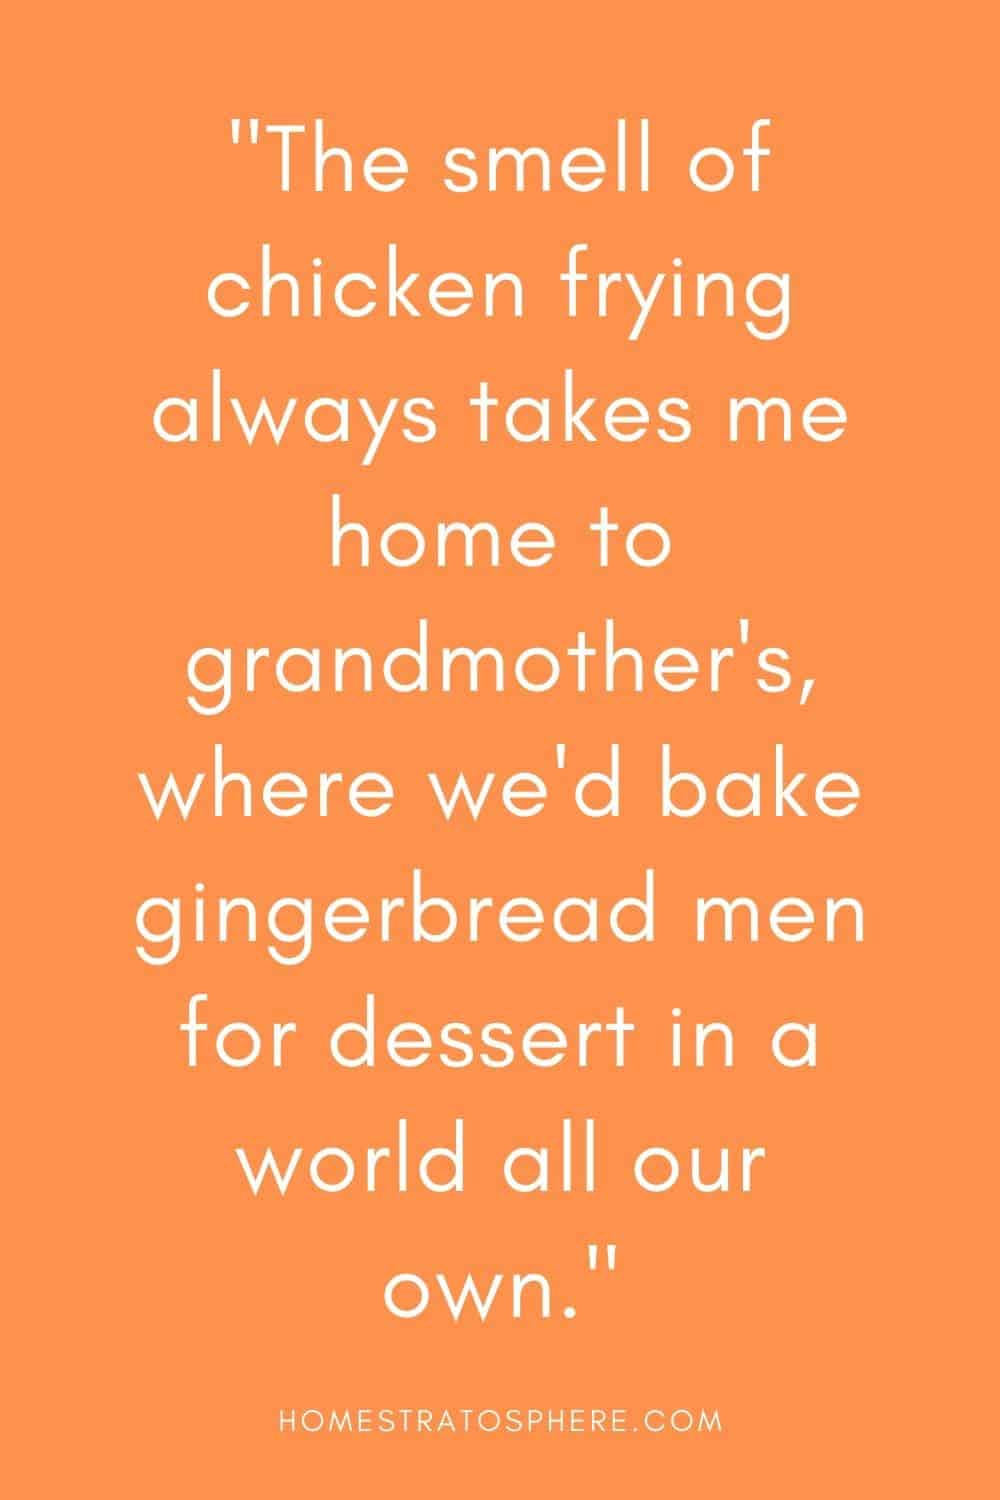 """""""The smell of chicken frying always takes me home to grandmother's, where we'd bake gingerbread men for dessert in a world all our own."""""""